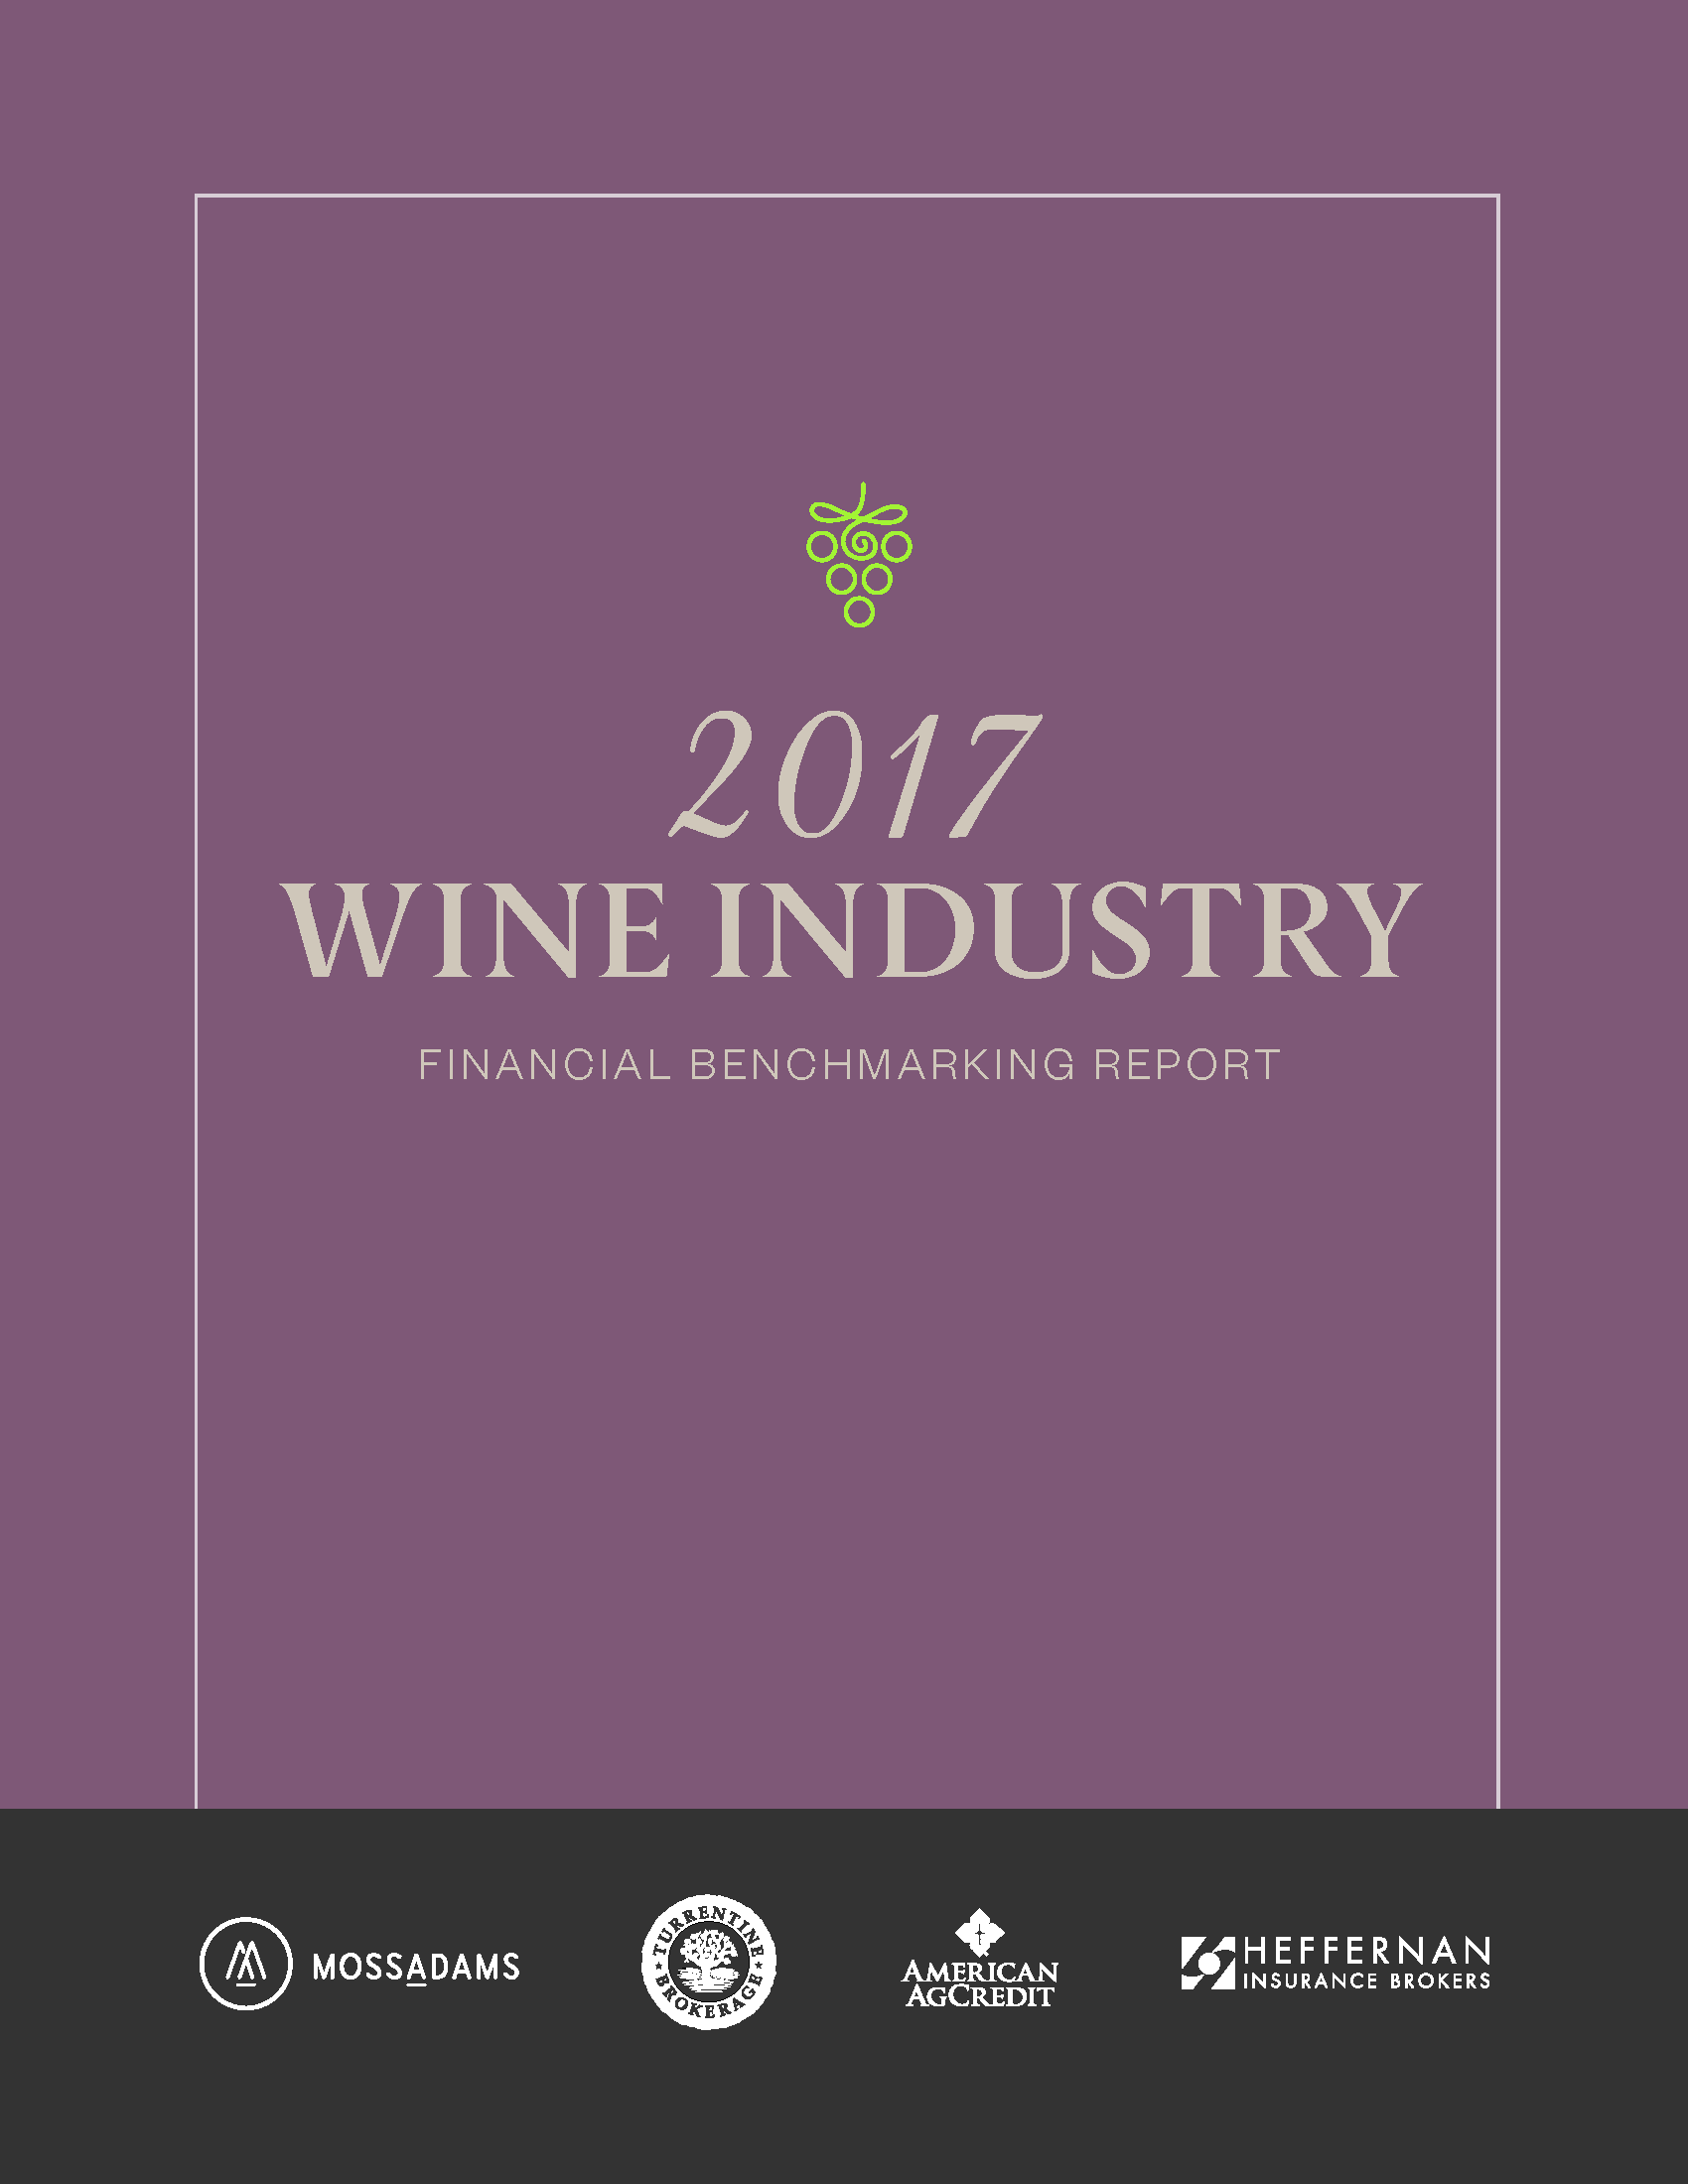 final-wine-industry-financial-benchmarking-report-2017 1